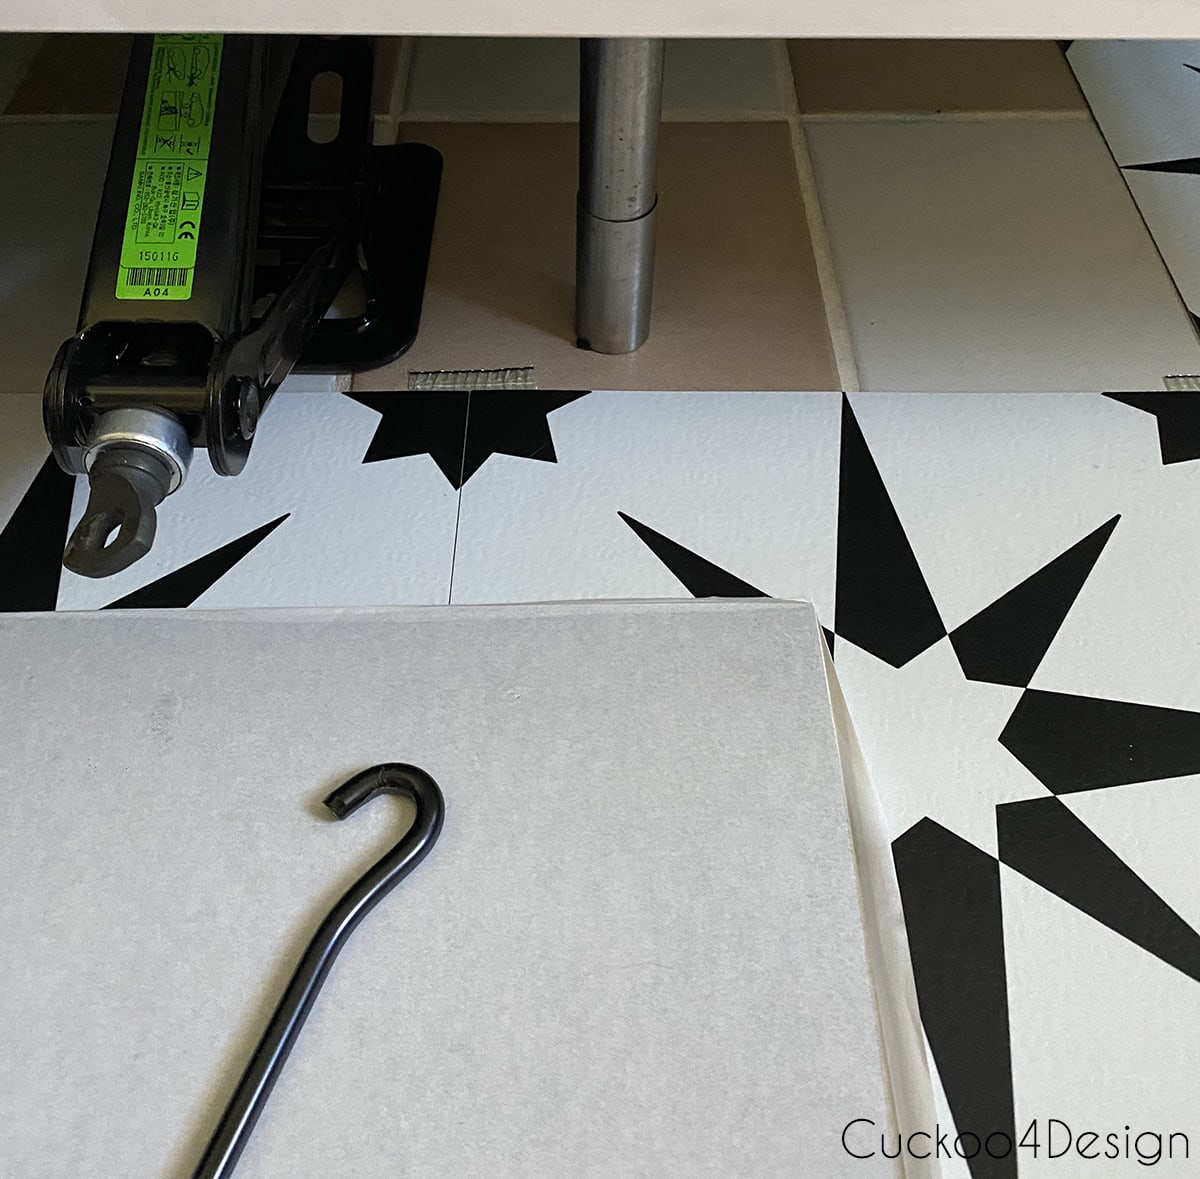 applying cheap peel and stick floor tile under Ikea floating vanity with car jack